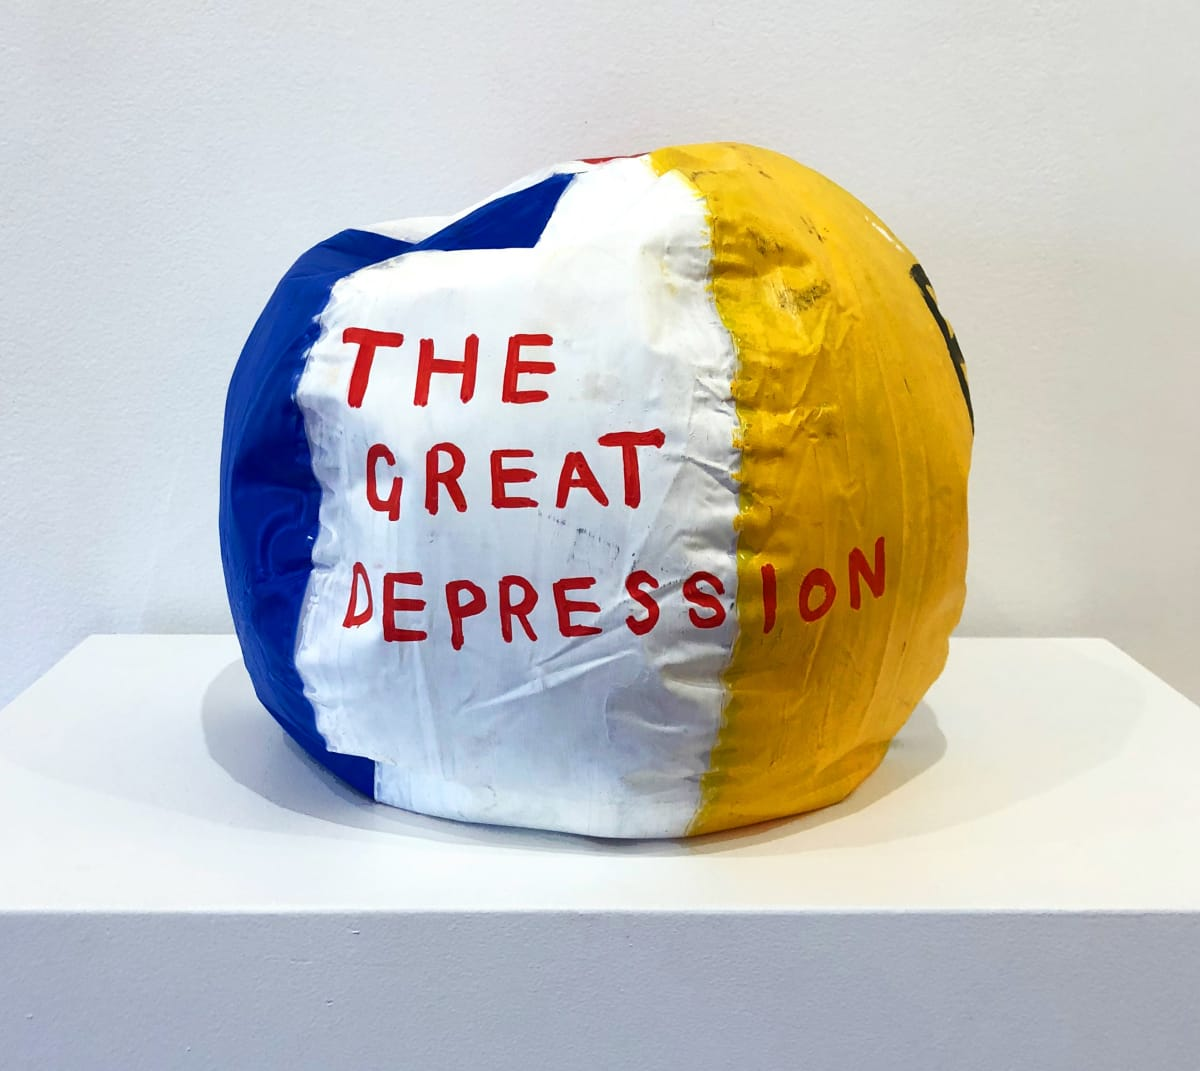 Brad Teodoruk, The Great Depression , 2019